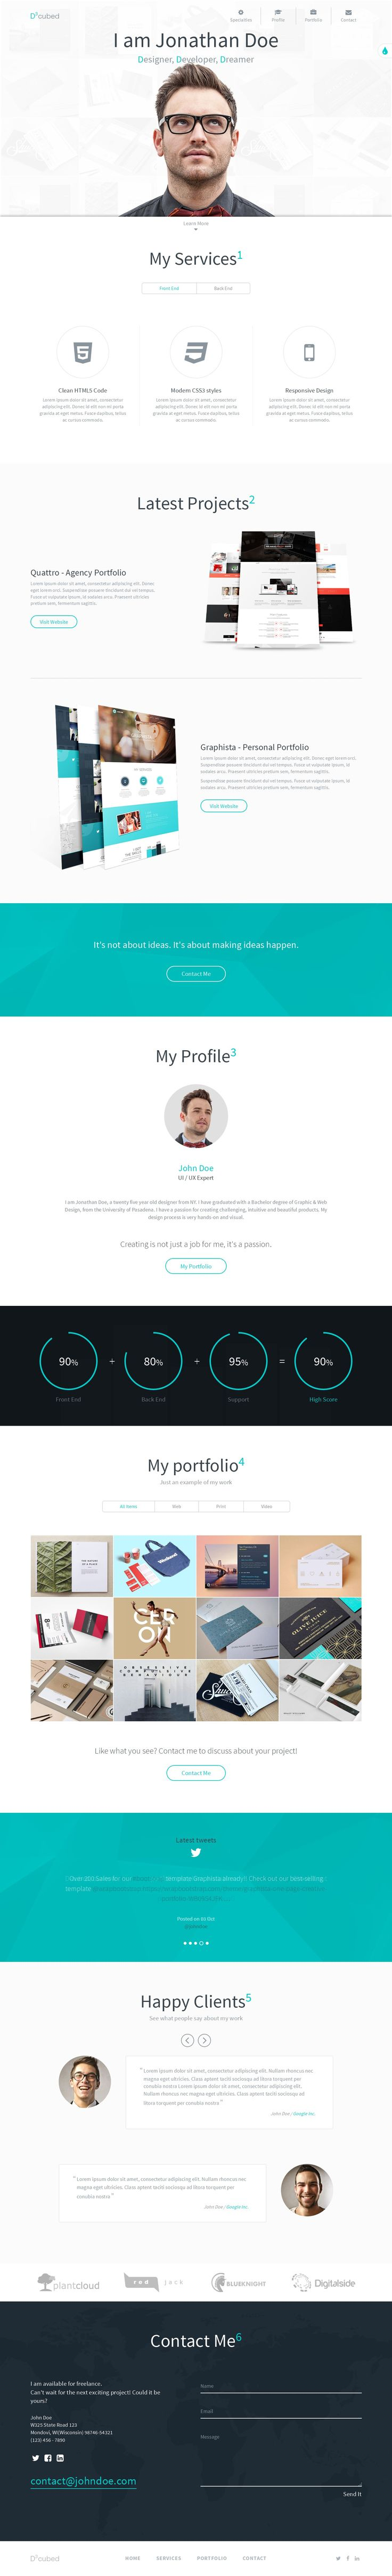 D-cubed is a modern #onepage personal #portfolio template. It is the perfect solution for Web Designers, Graphic Designers and any kind of creative people. D-cubed is built on #Bootstrap v3.3.2 and packed with great features. Download Now➝  https://wrapbootstrap.com/theme/d-cubed-modern-personal-portfolio-WB08LL3NM?ref=datasata